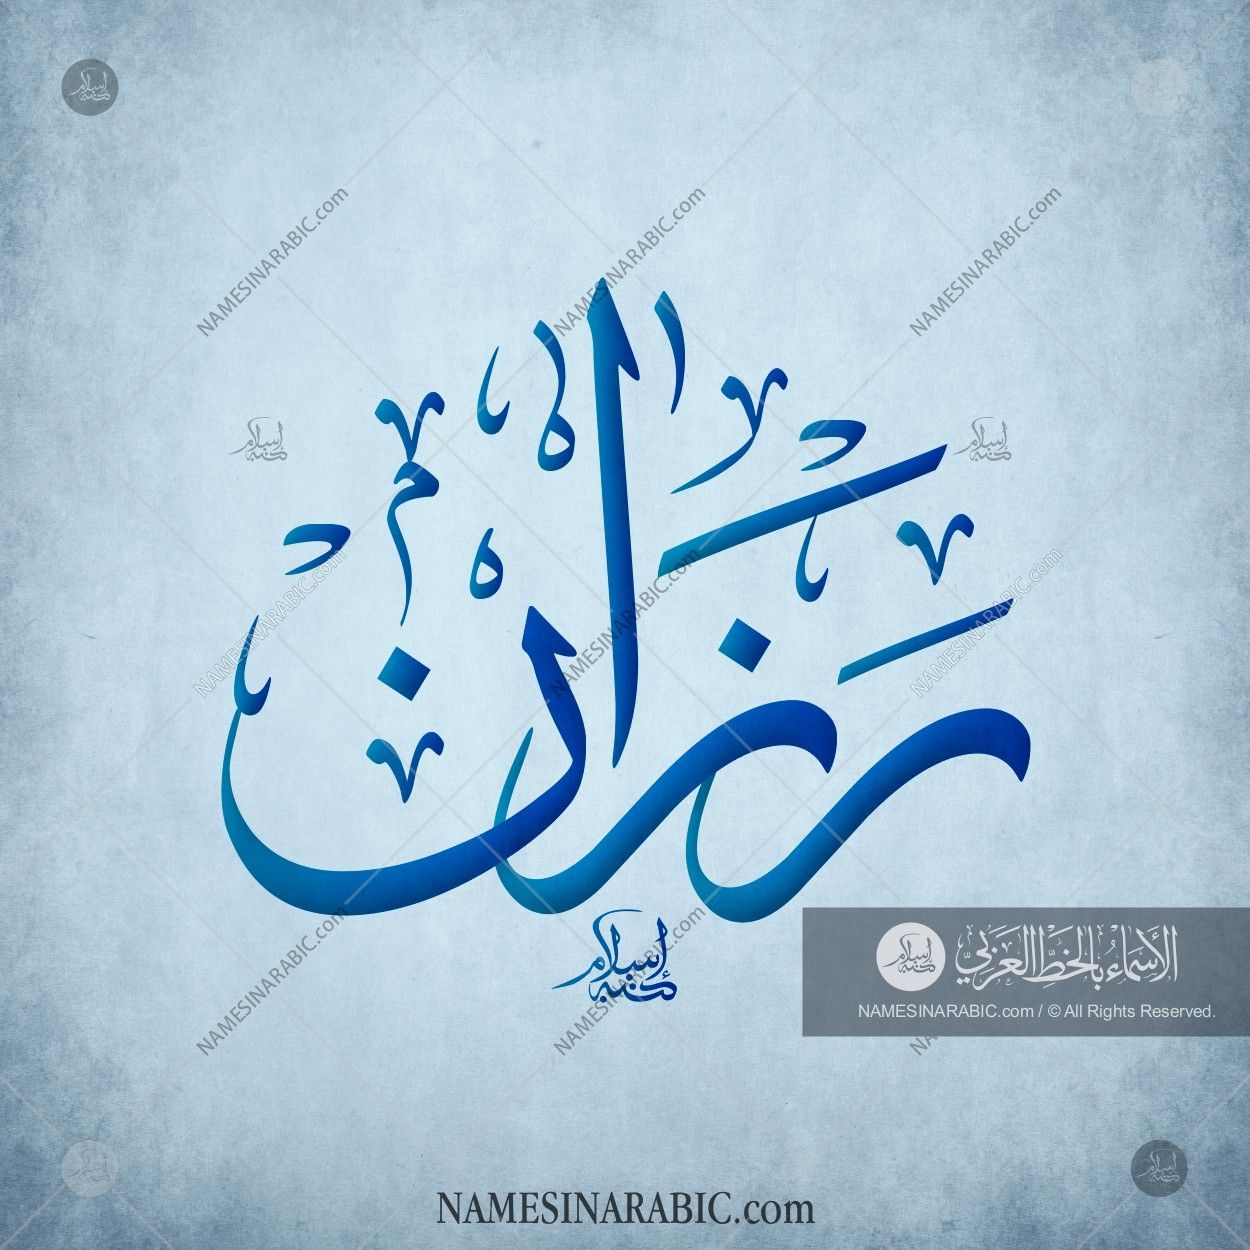 Razan رزان Names In Arabic Calligraphy Name 3077 Alphabet Letters Design Arabic Calligraphy Art Lettering Alphabet